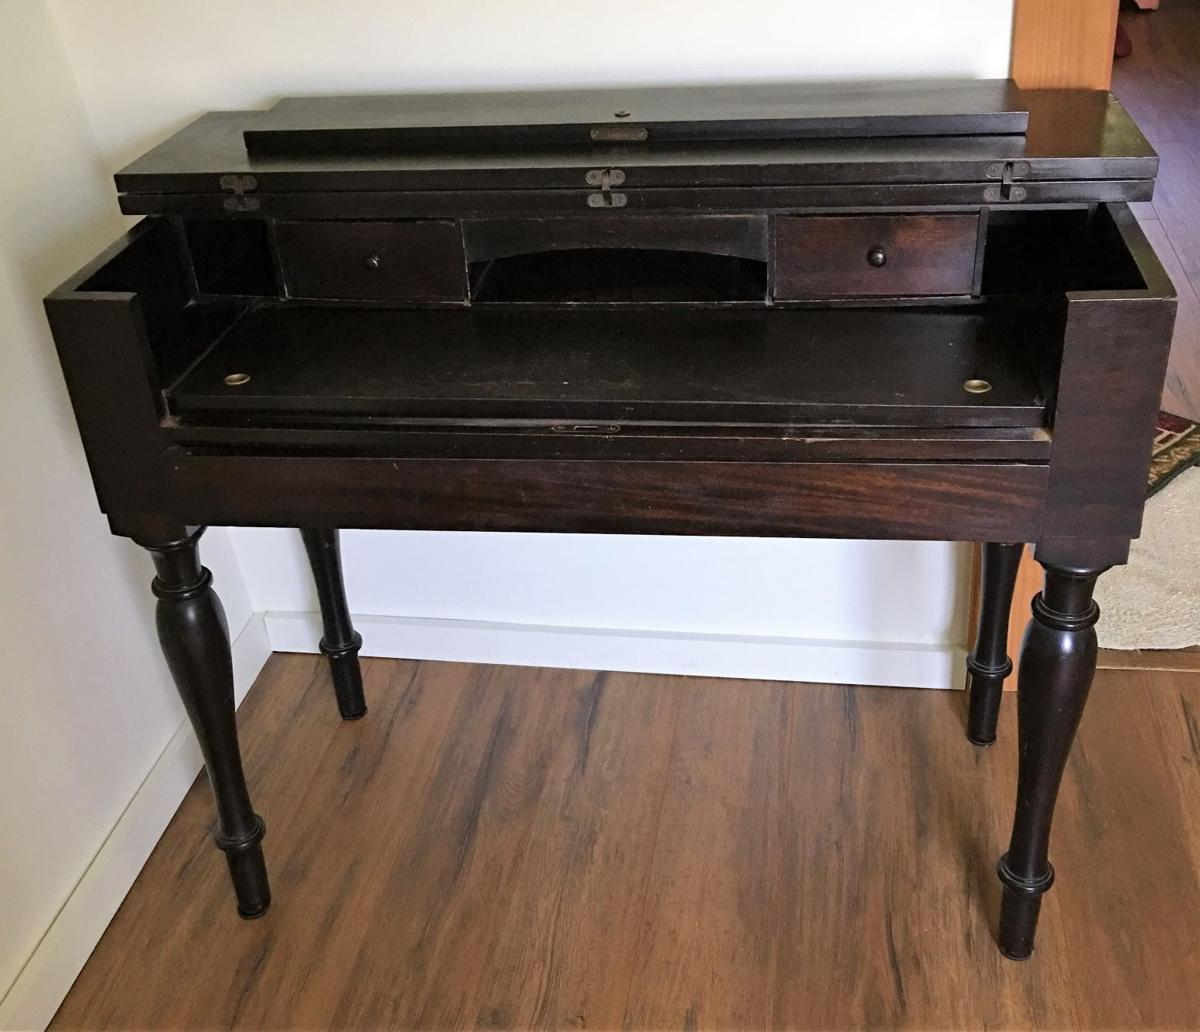 Antique desk has its roots in an old musical instrument - Antique Desk Has Its Roots In An Old Musical Instrument Real